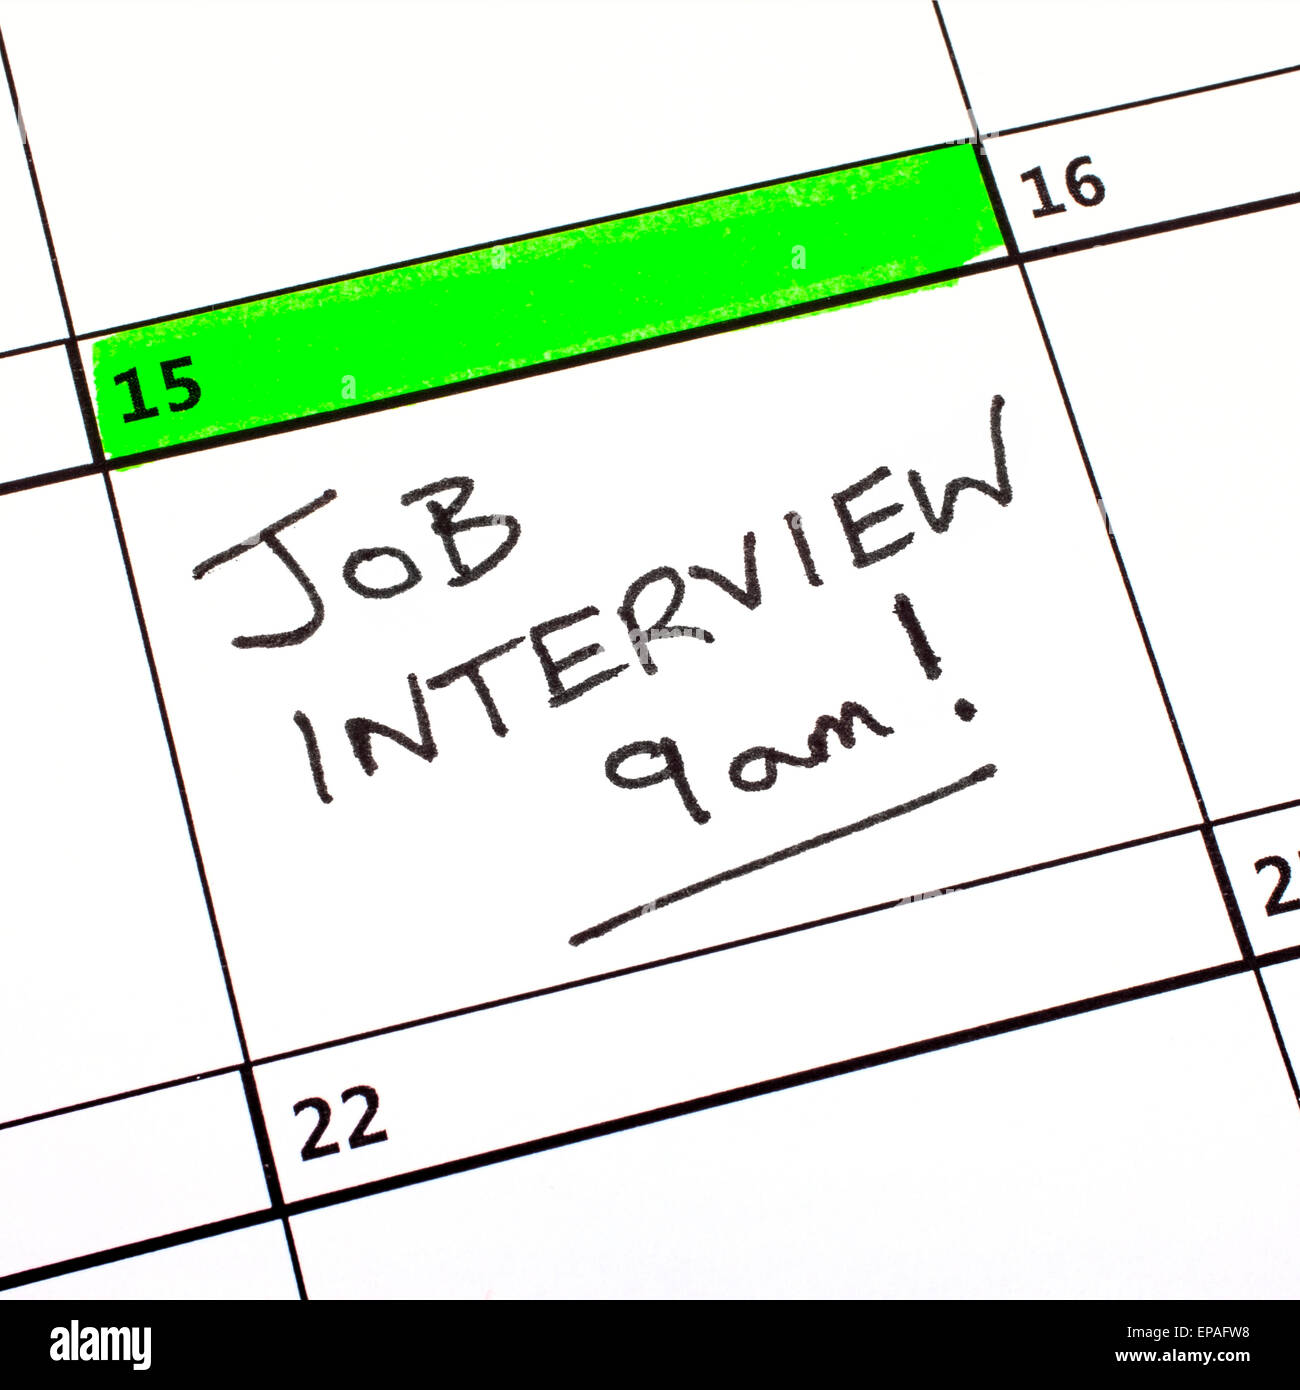 A Job Interview Date written on a Calendar. - Stock Image